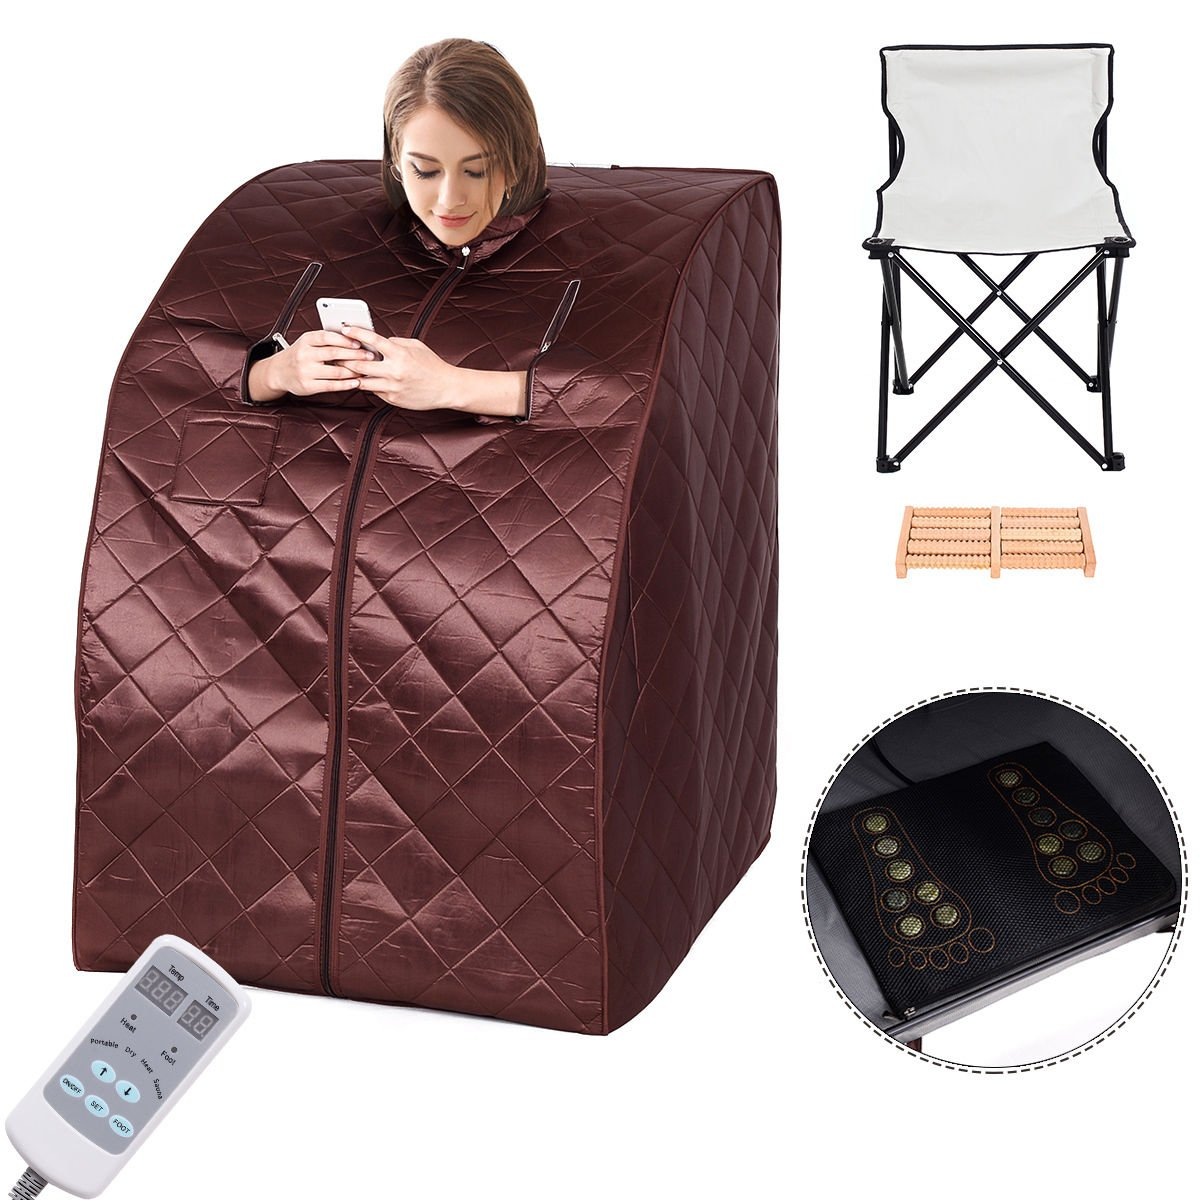 Portable Far Infrared Sauna Spa Full Body Slimming Loss Weight Detox Therapy - Coffee